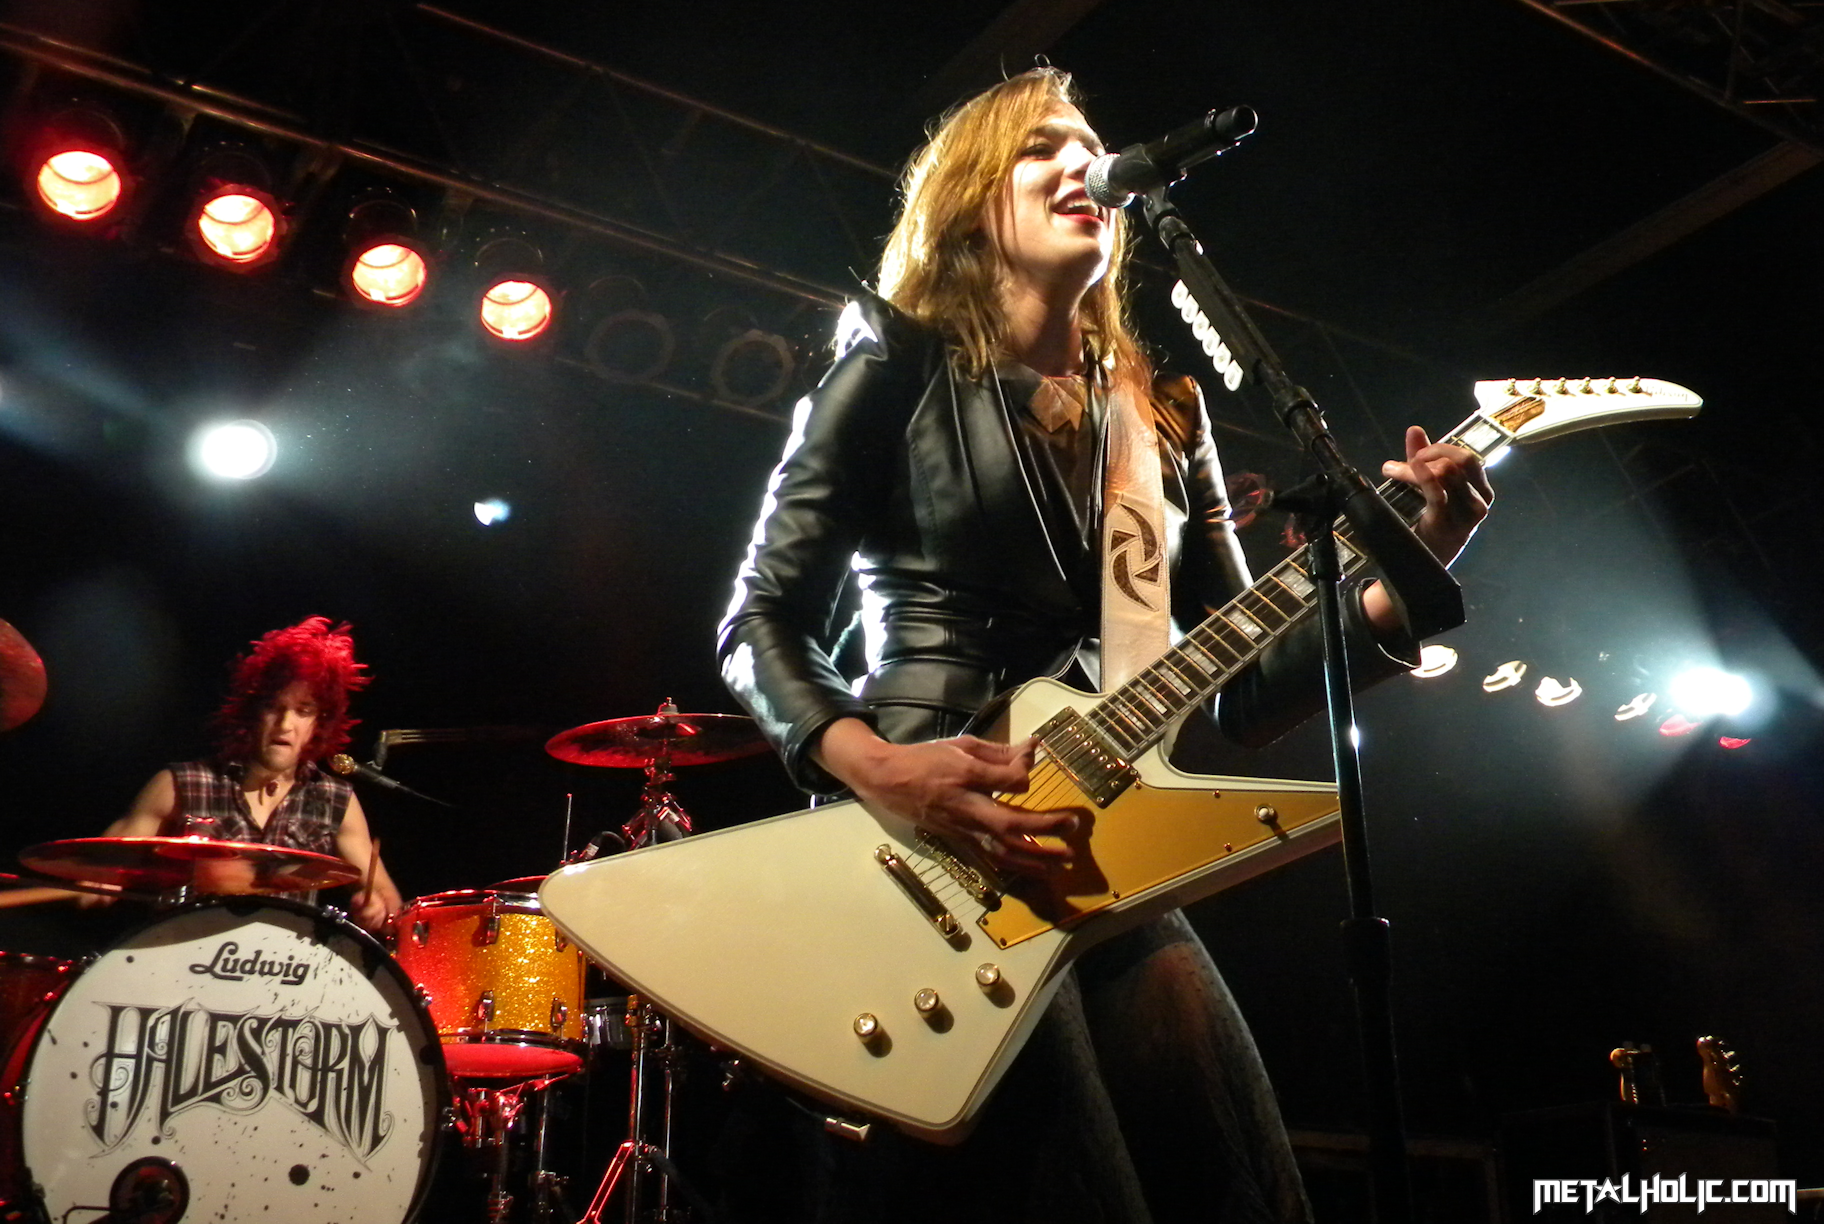 HALESTORM Hard rock alternative rock alternative metal 1824x1224